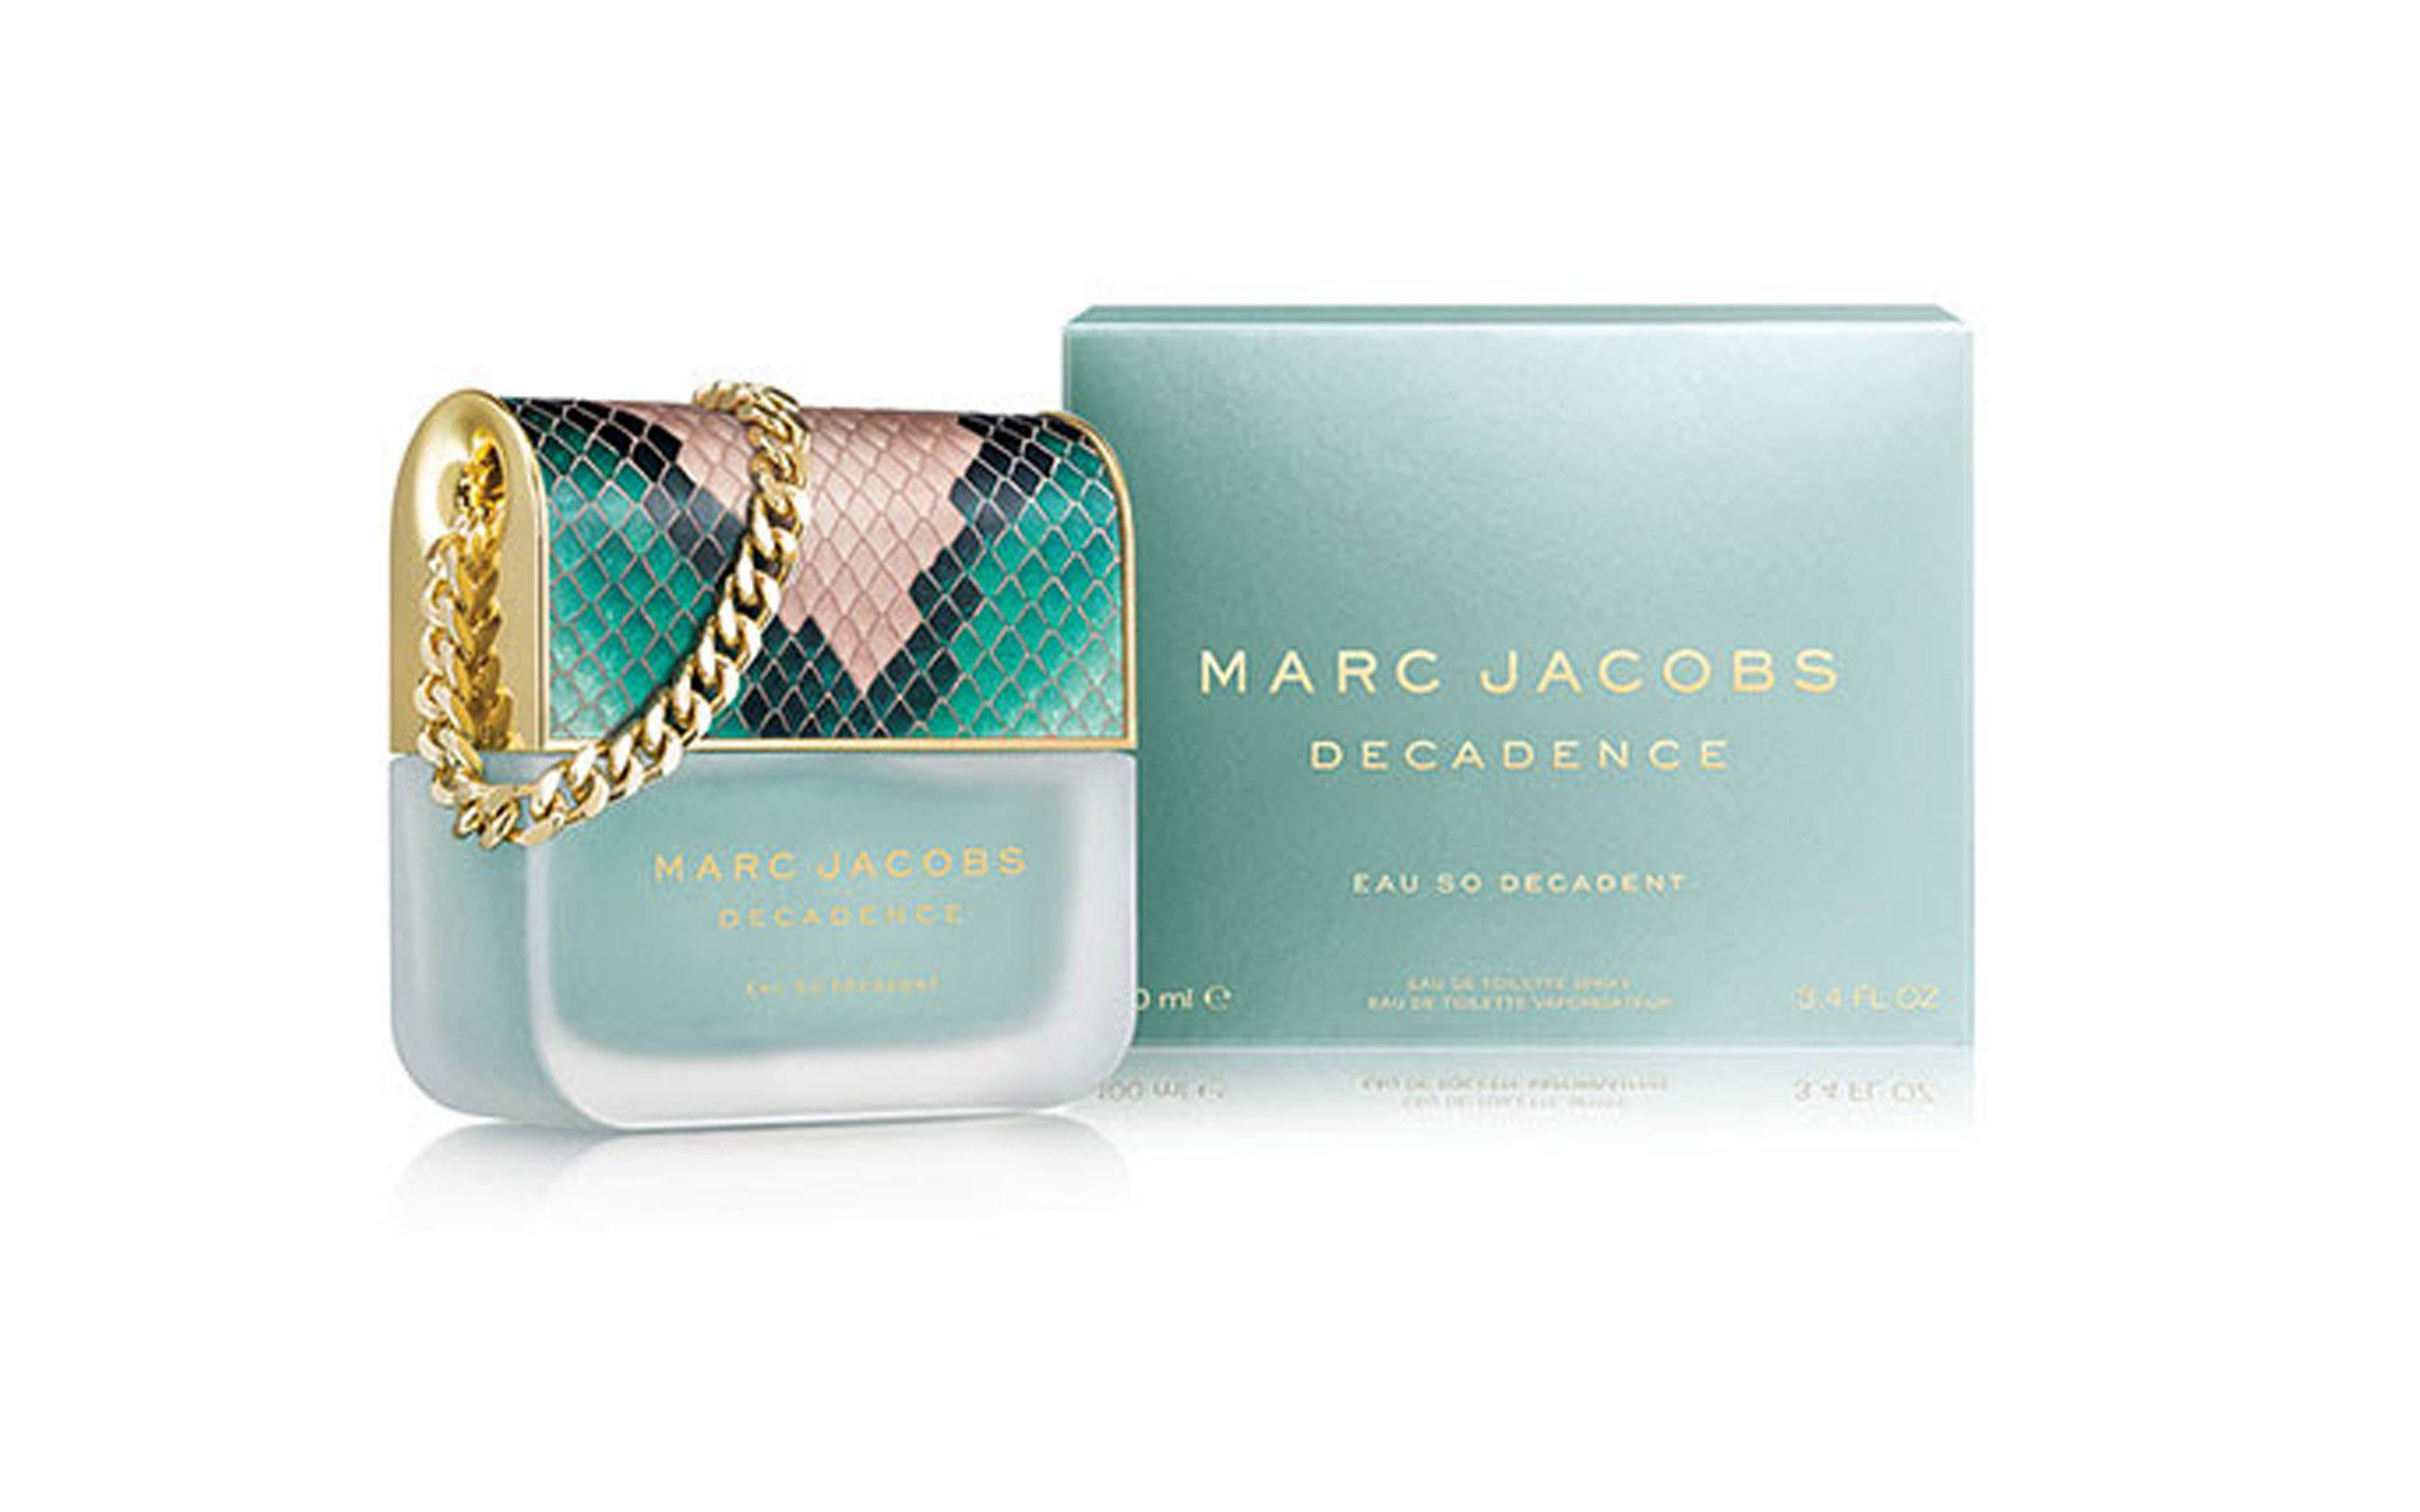 Marc Jacobs' Launched New Fragrance 'Decadence'